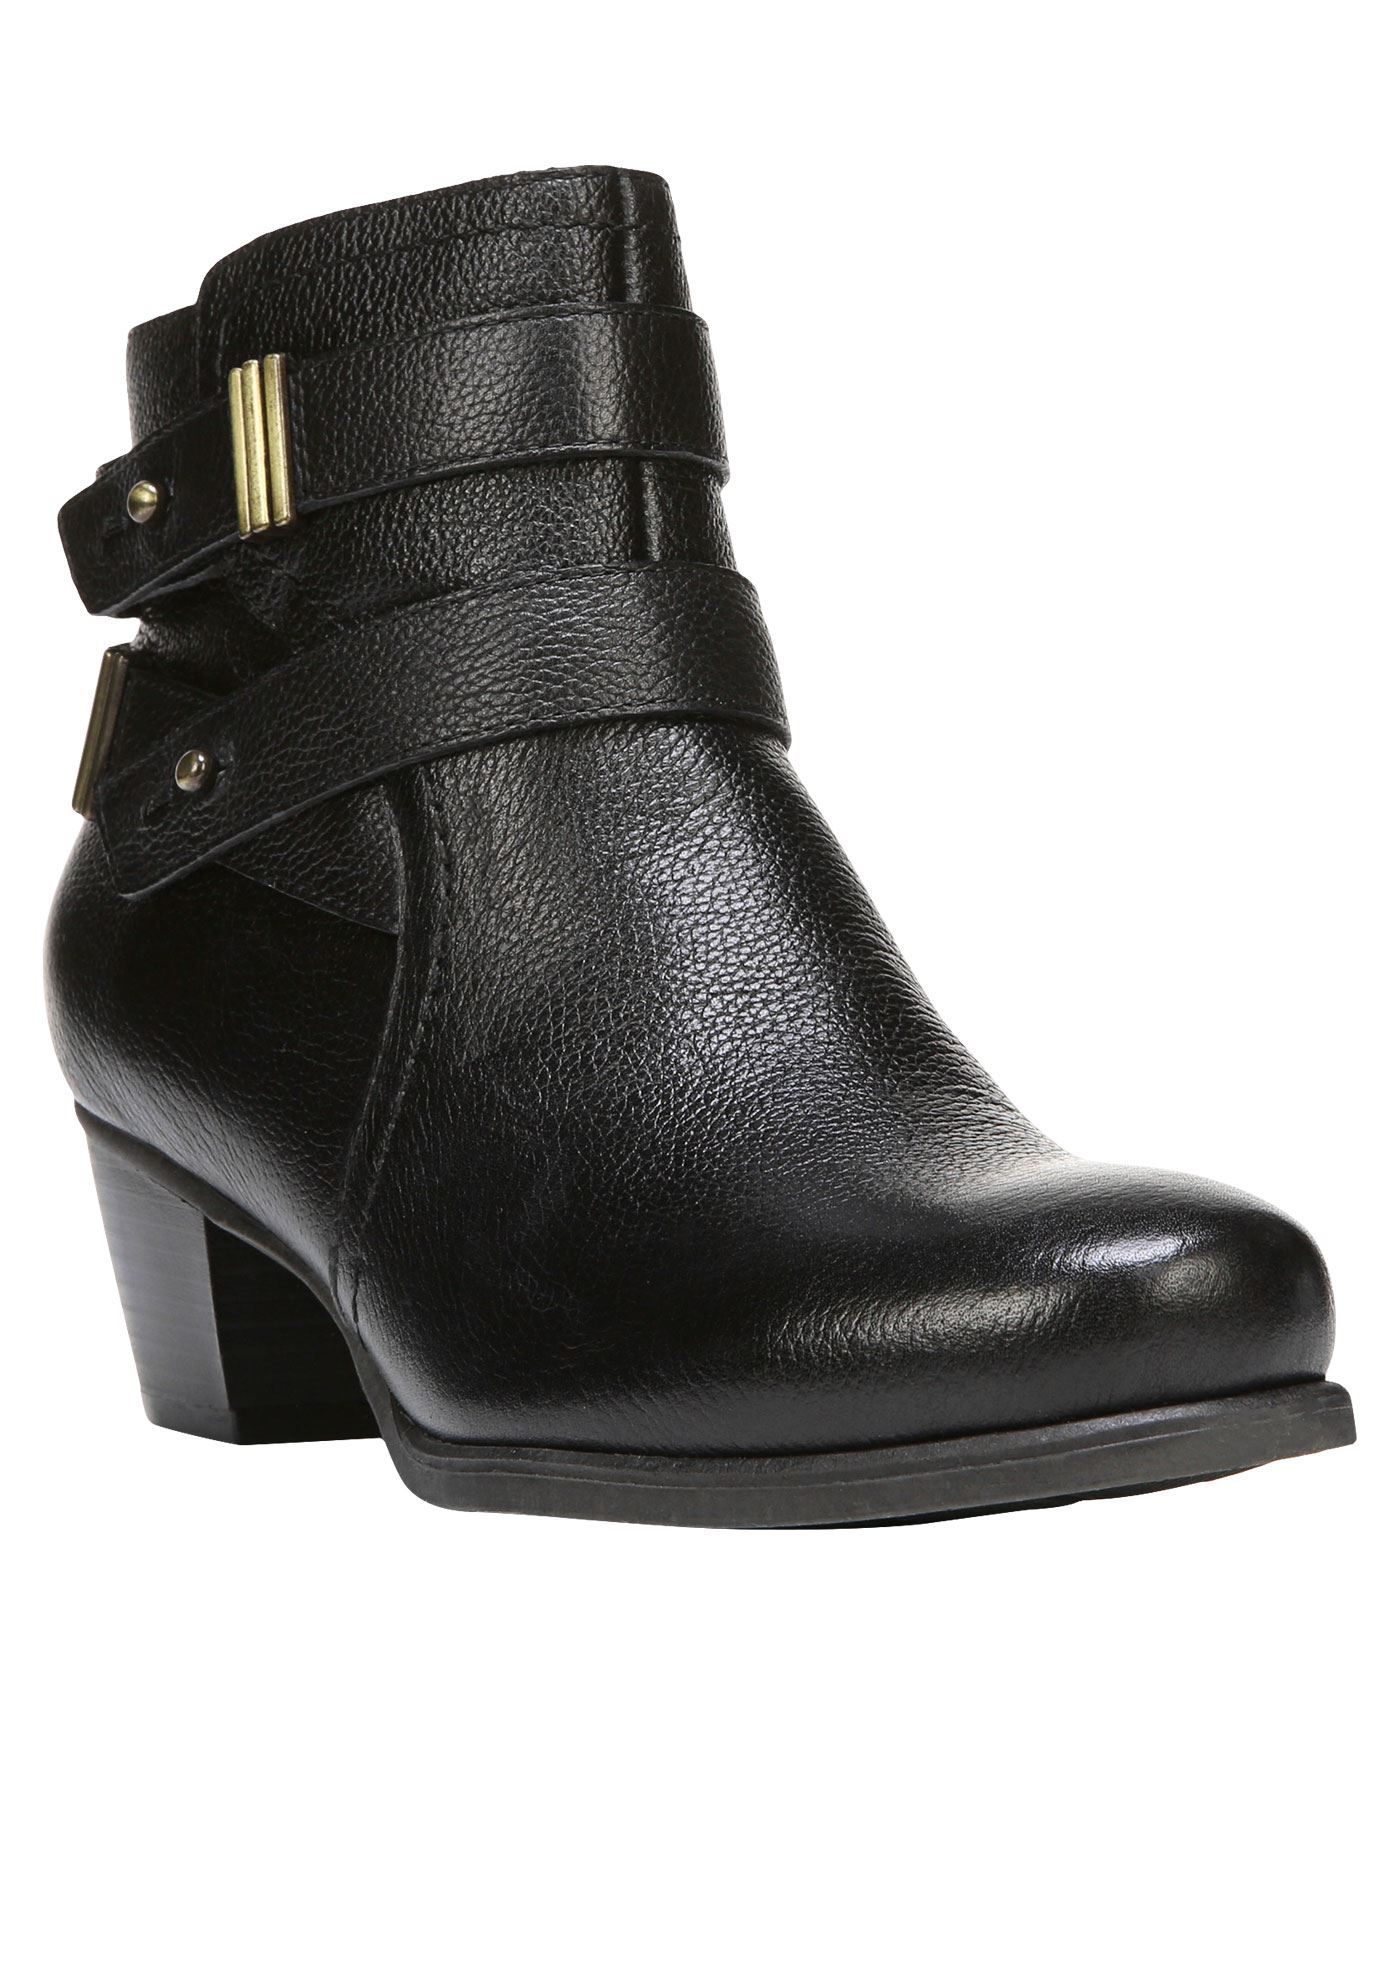 dcb06f4f45f Kepler Booties by Naturalizer - Wide Width Women s Ankle Booties